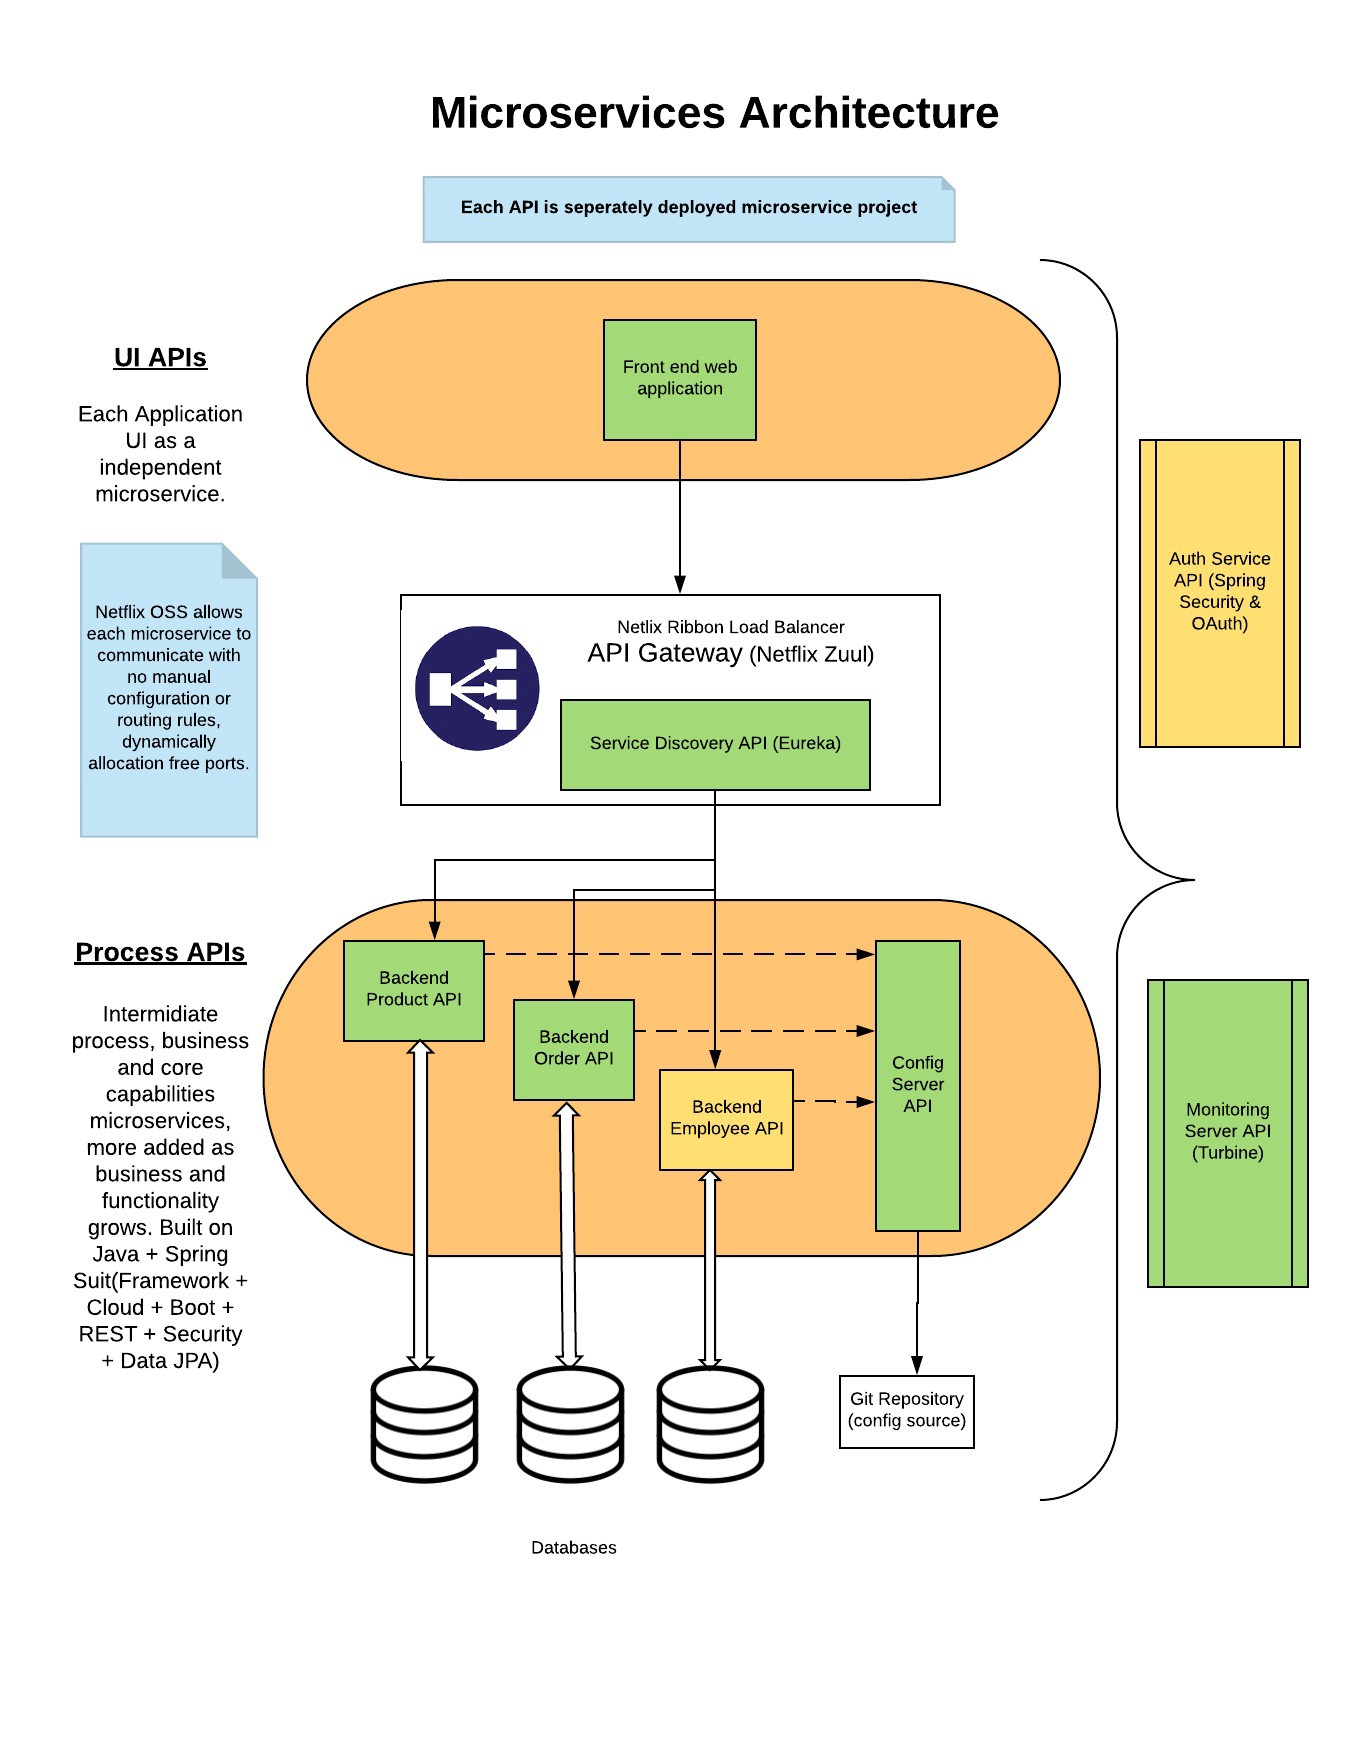 Microservices architecture, implementation and monitoring with